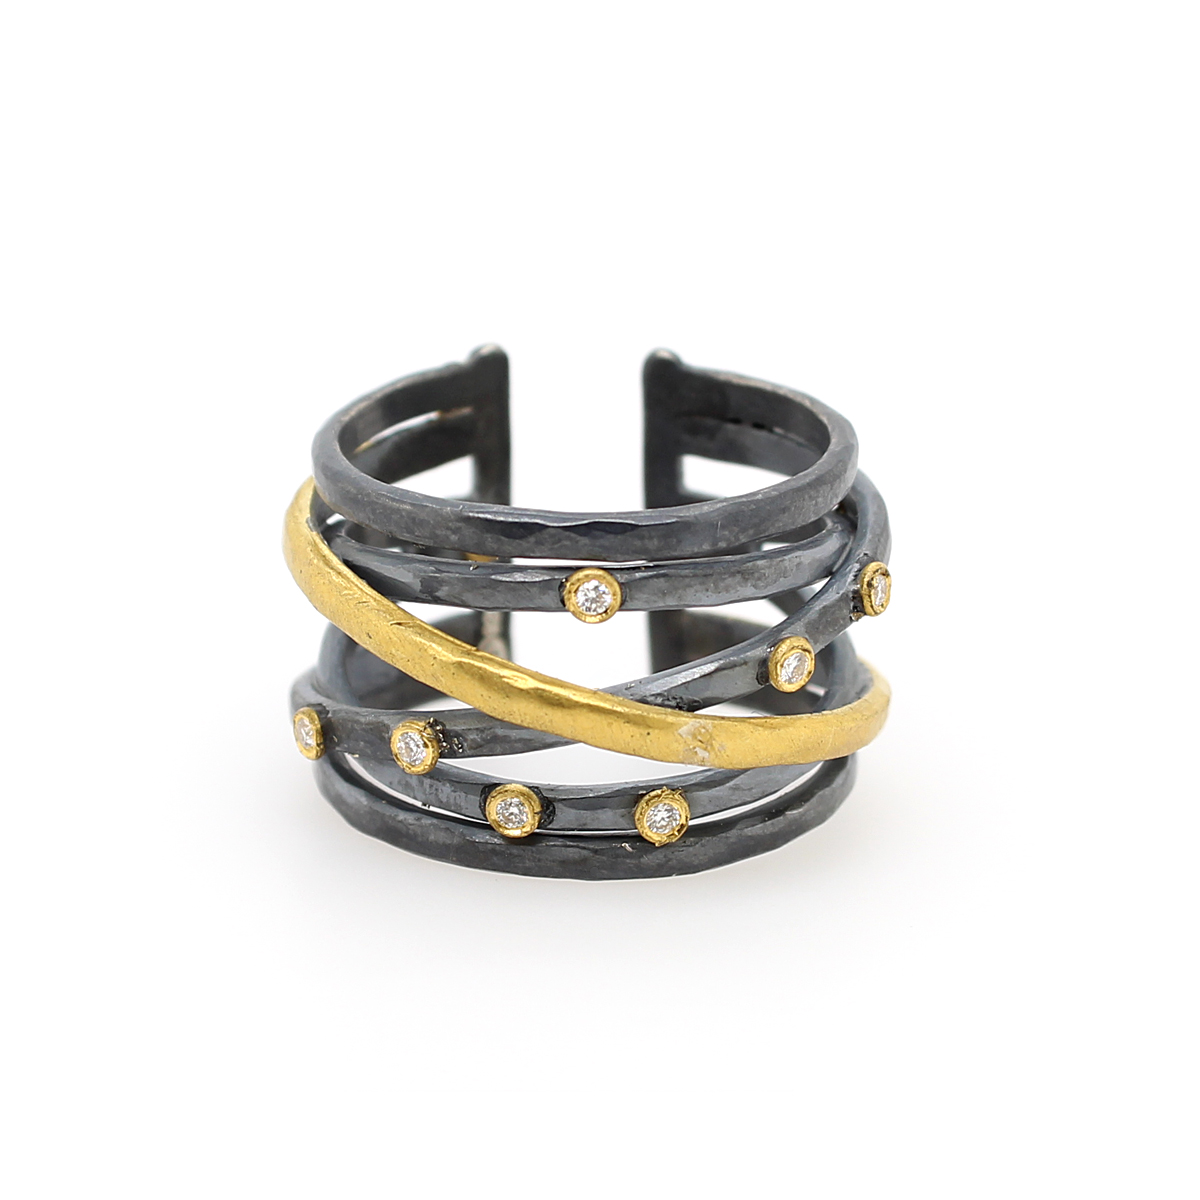 "Lika Behar 24 Karat Fusion Gold/Oxidized Silver Diamond ""Stockholm Crossover"" Open Back Ring"